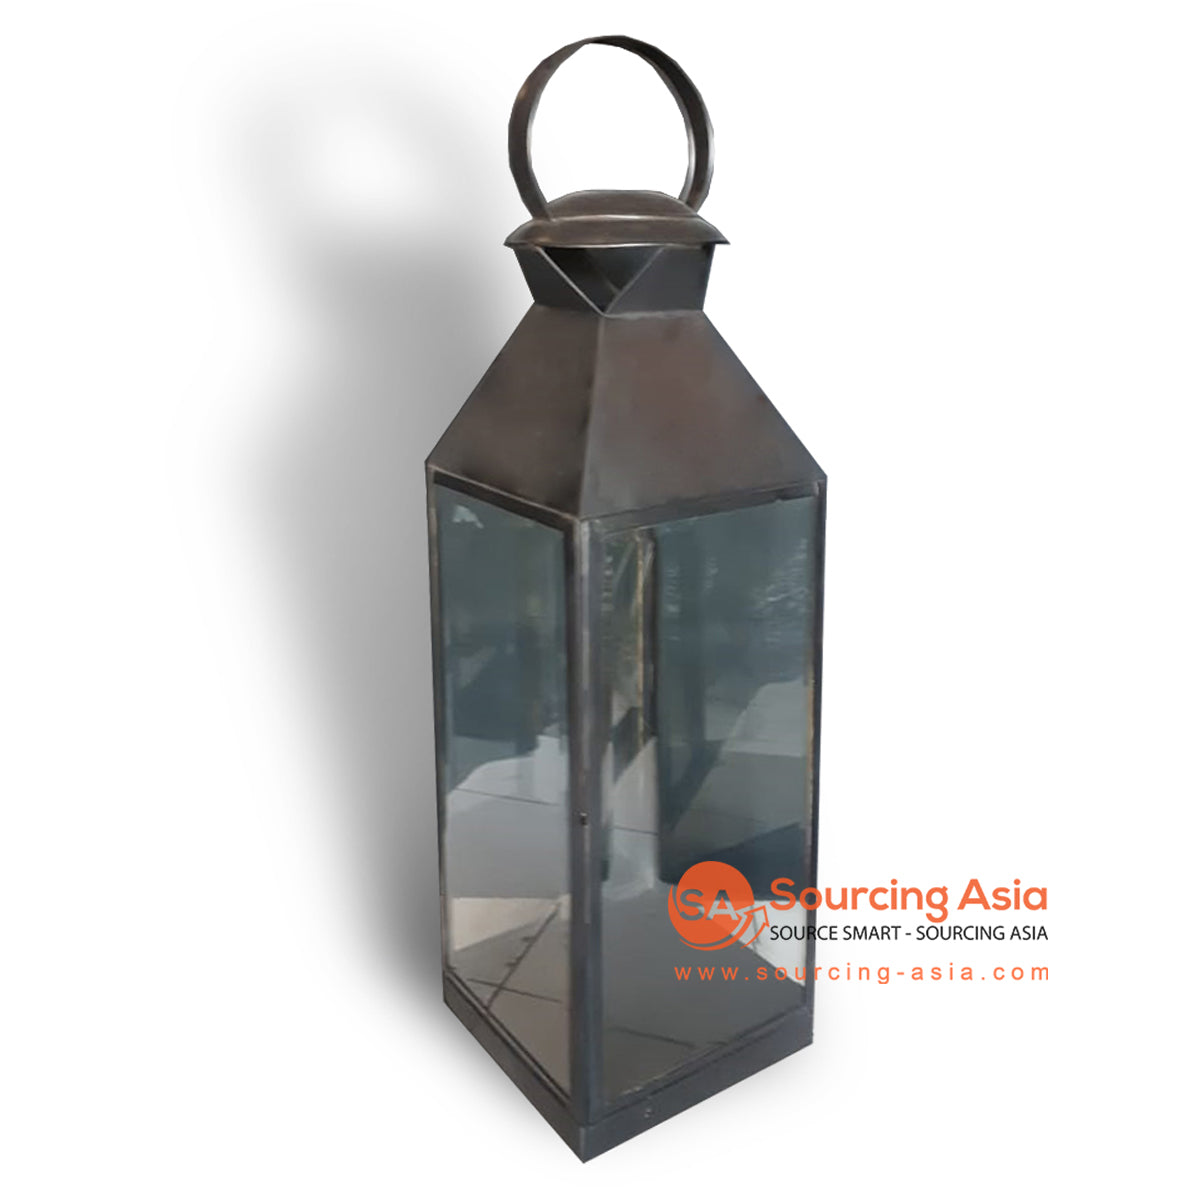 ODE036-2 COPPER LANTERN